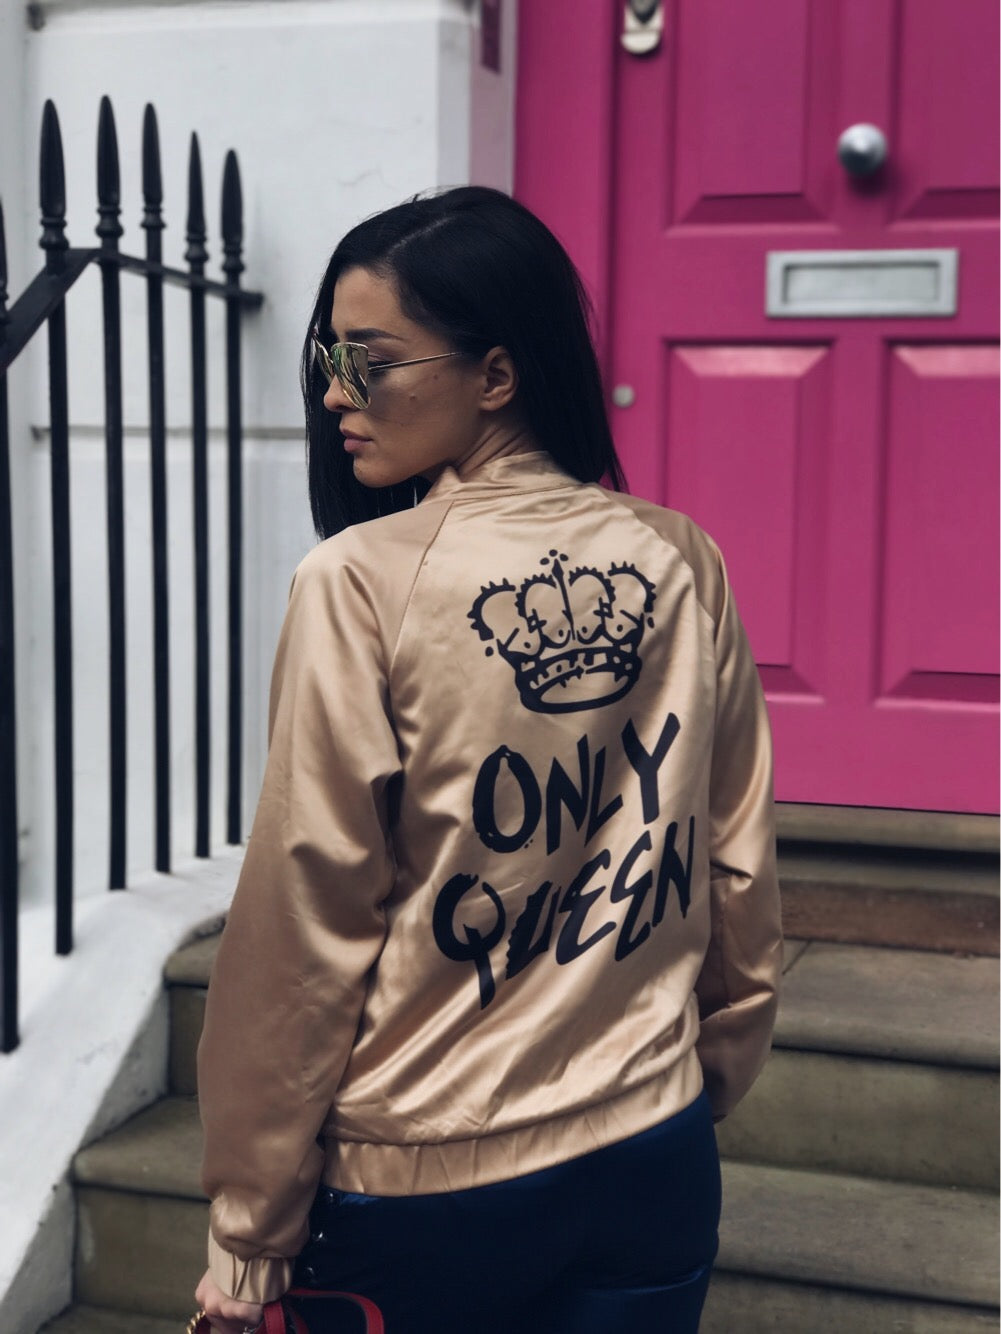 Only Queen Bomber jacket madness